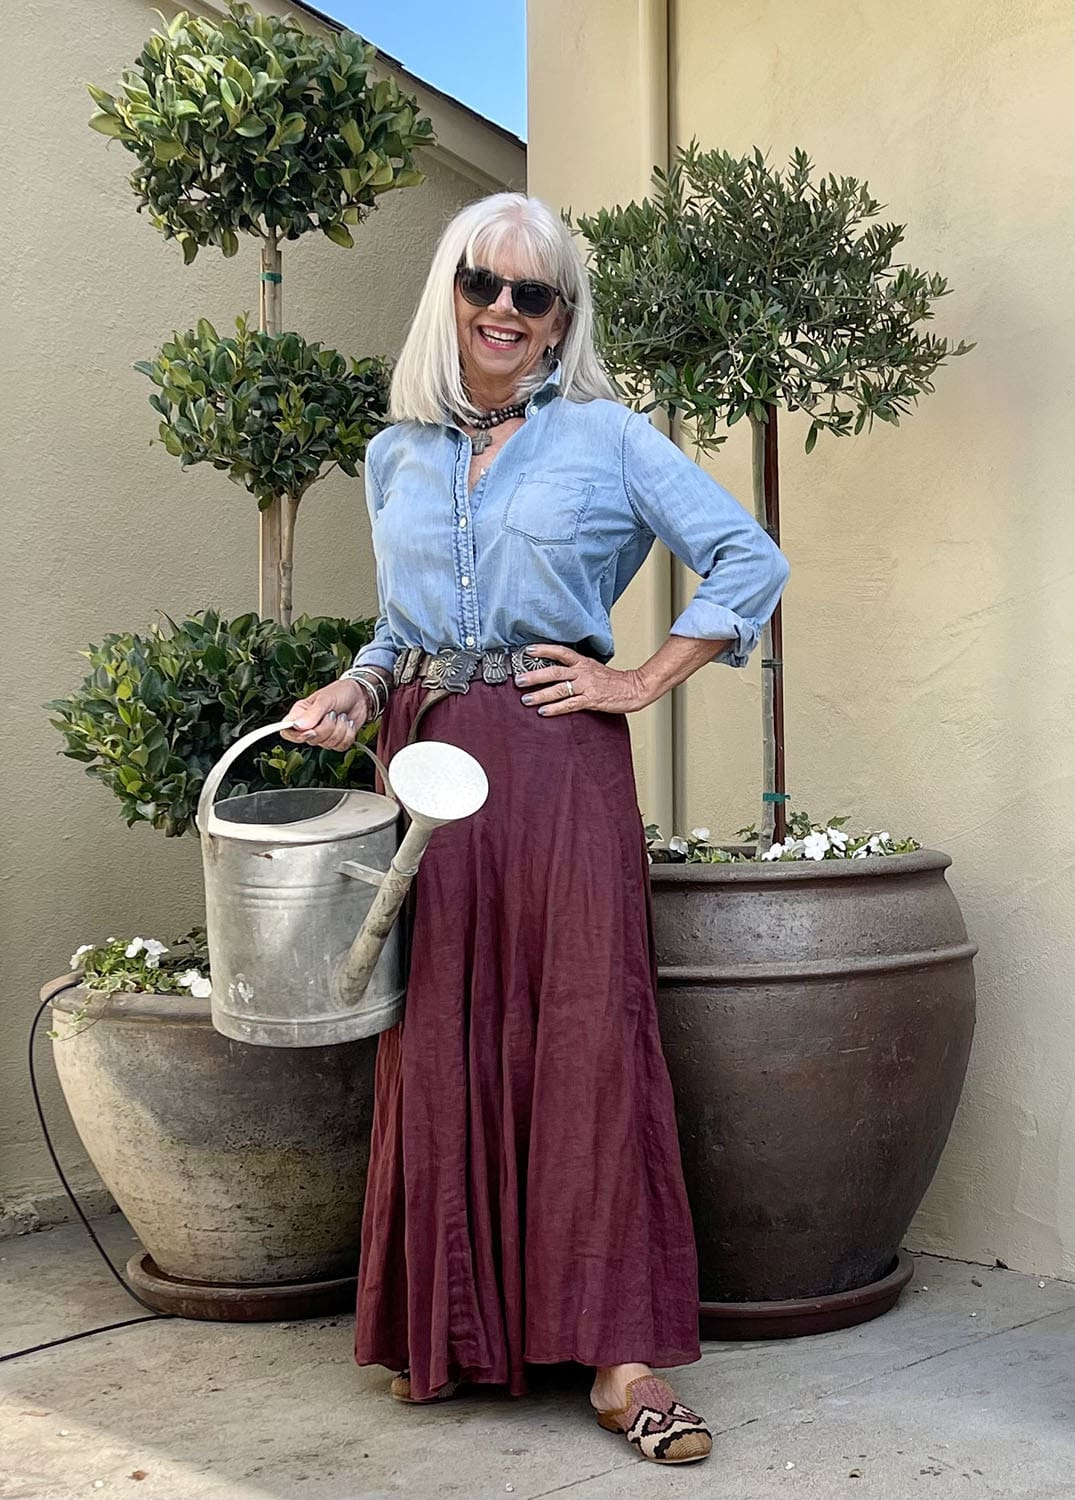 cindy hattersley in j crew denim shirt and cp shades lily skirt